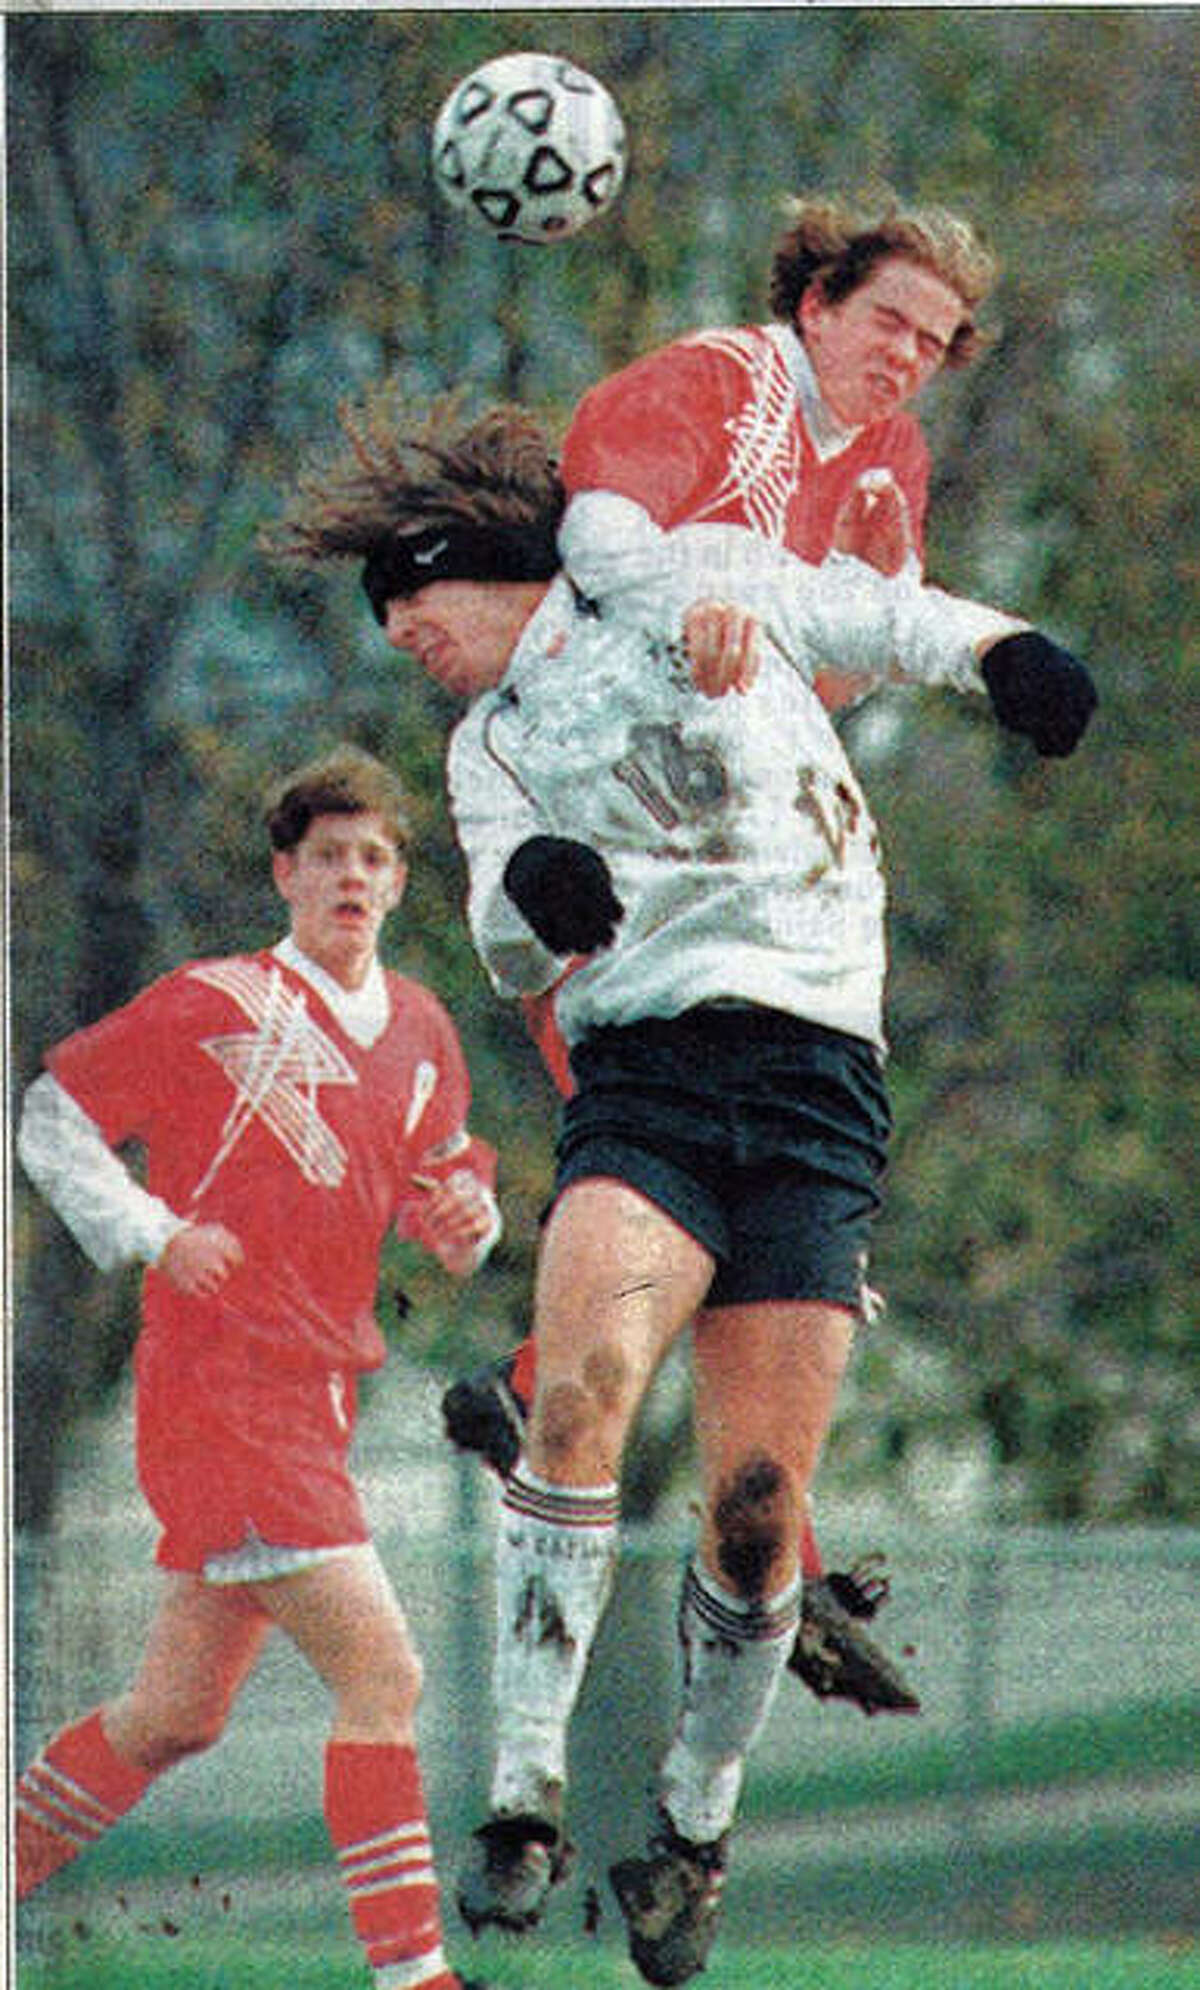 Edwardsville's Justin McFarland, middle, goes up for a header during a state quarterfinal game against Palatine in 1995.